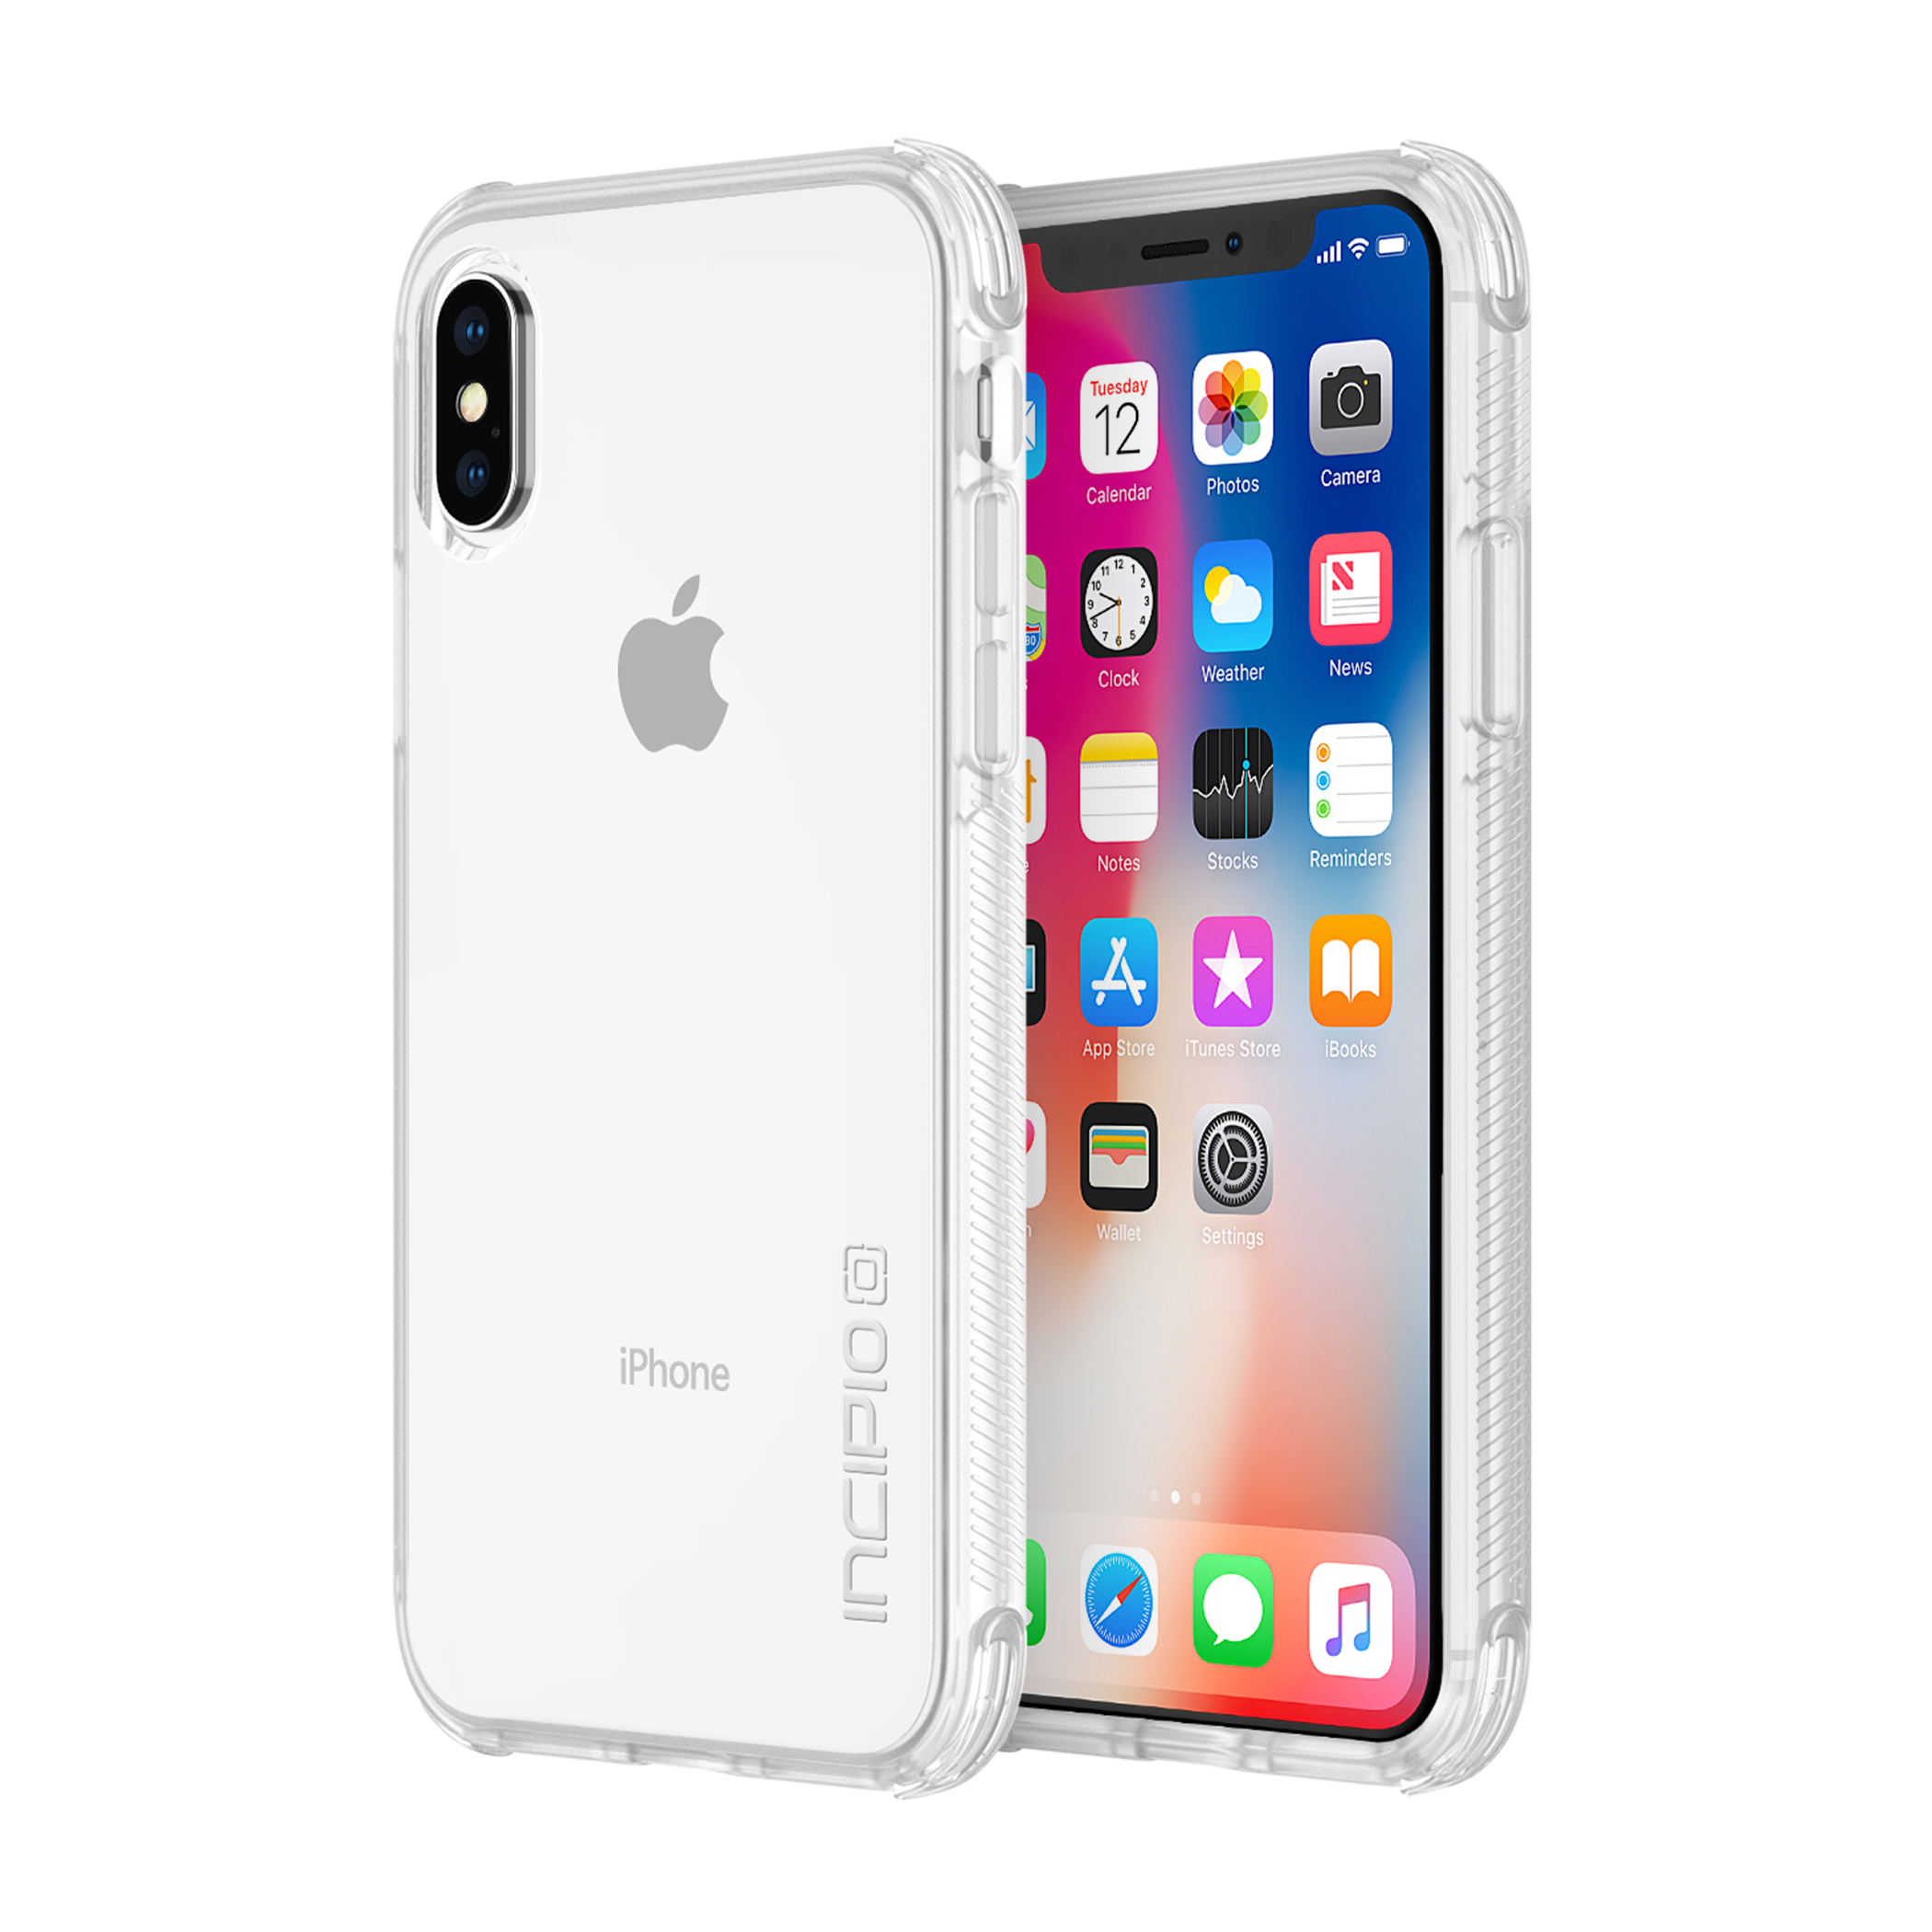 Incipio Reprieve Sport for iPhone X - Clear/Clear